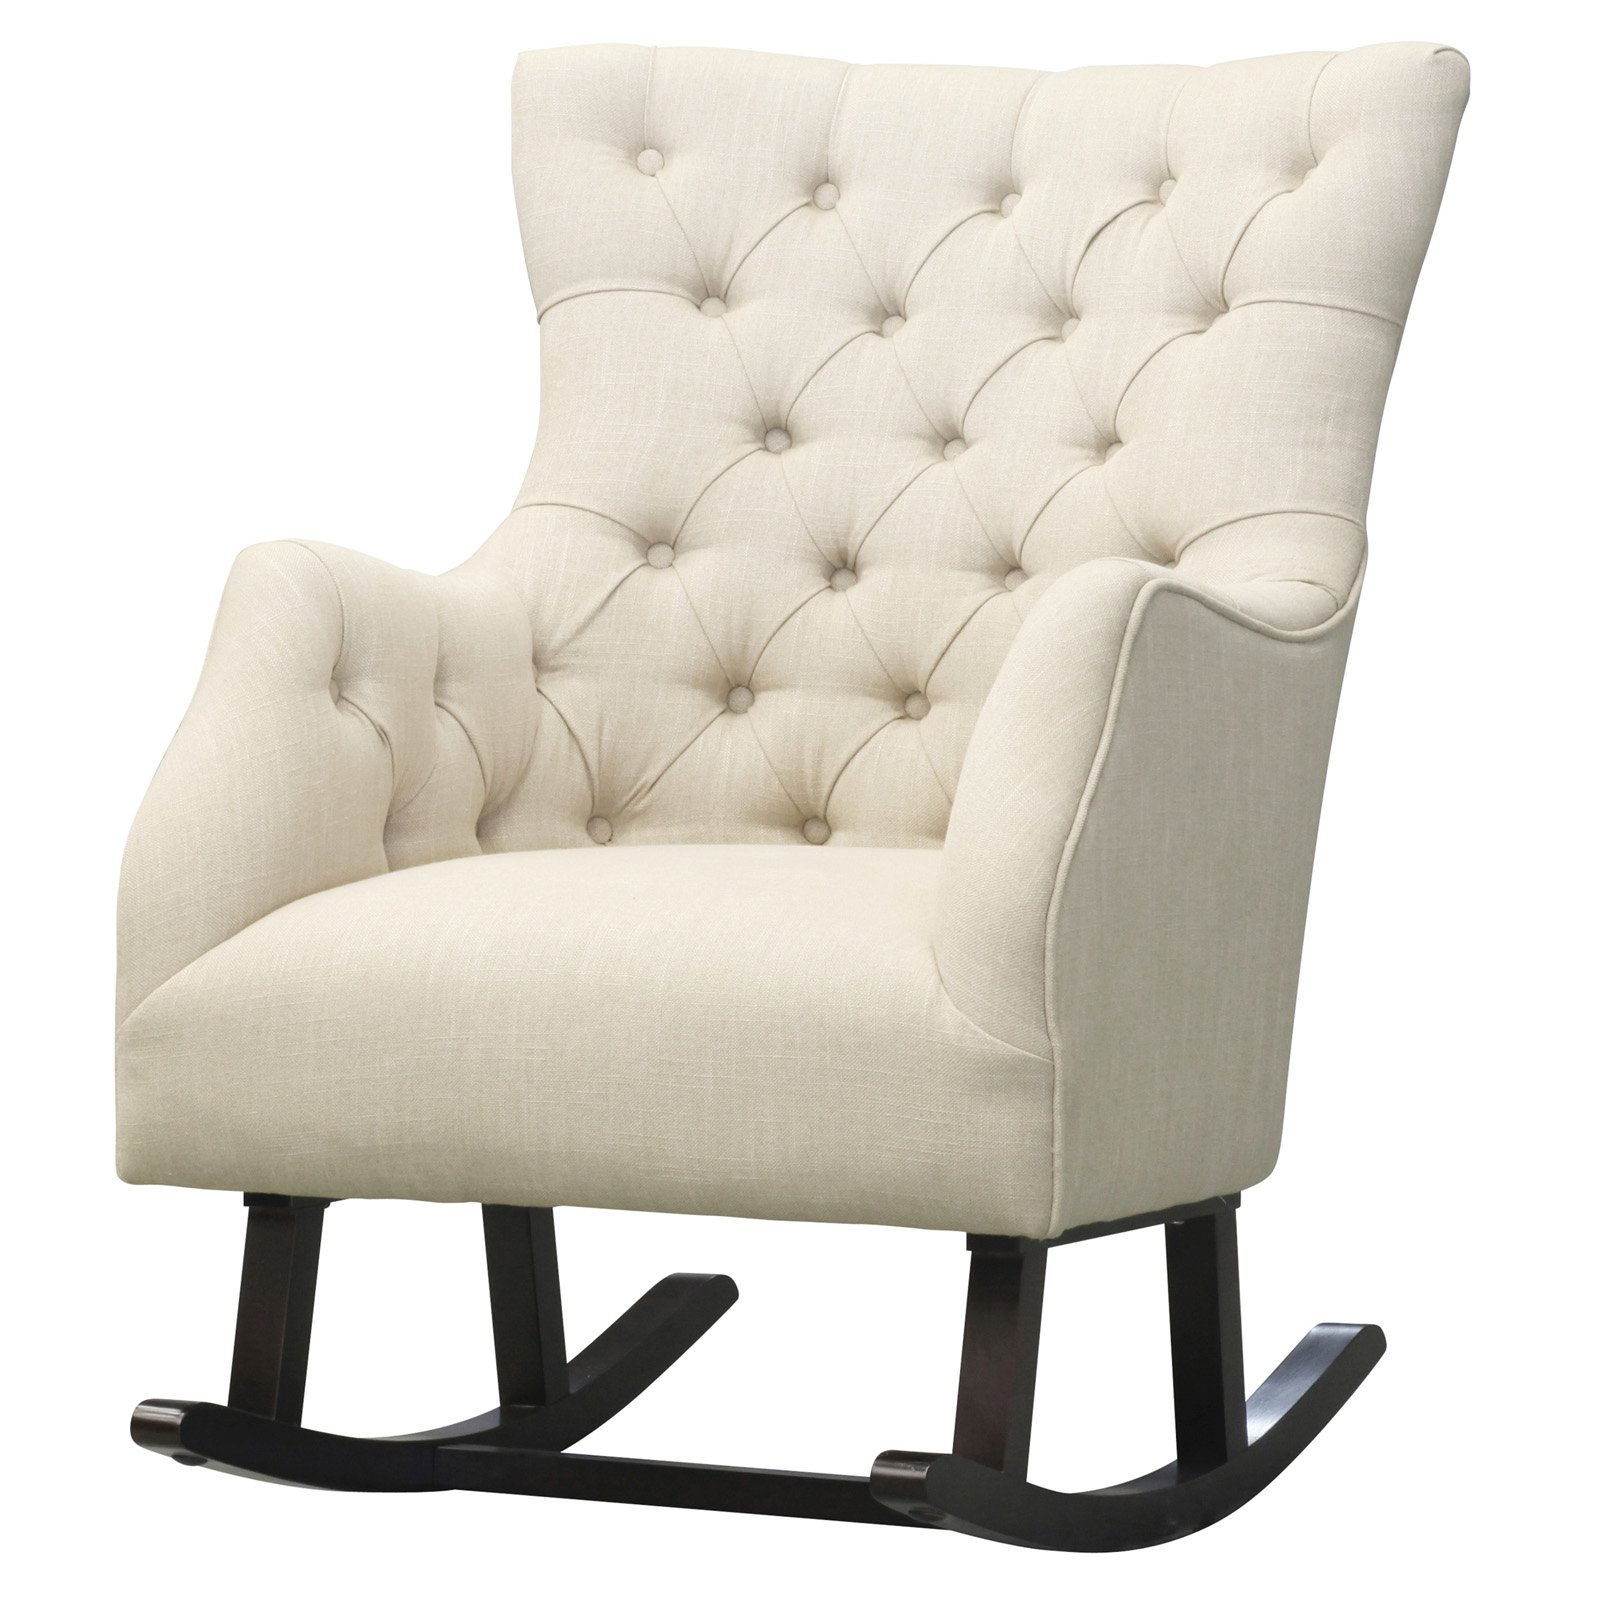 Charmant Abigail Fabric Tufted Rocking Chair   Walmart.com